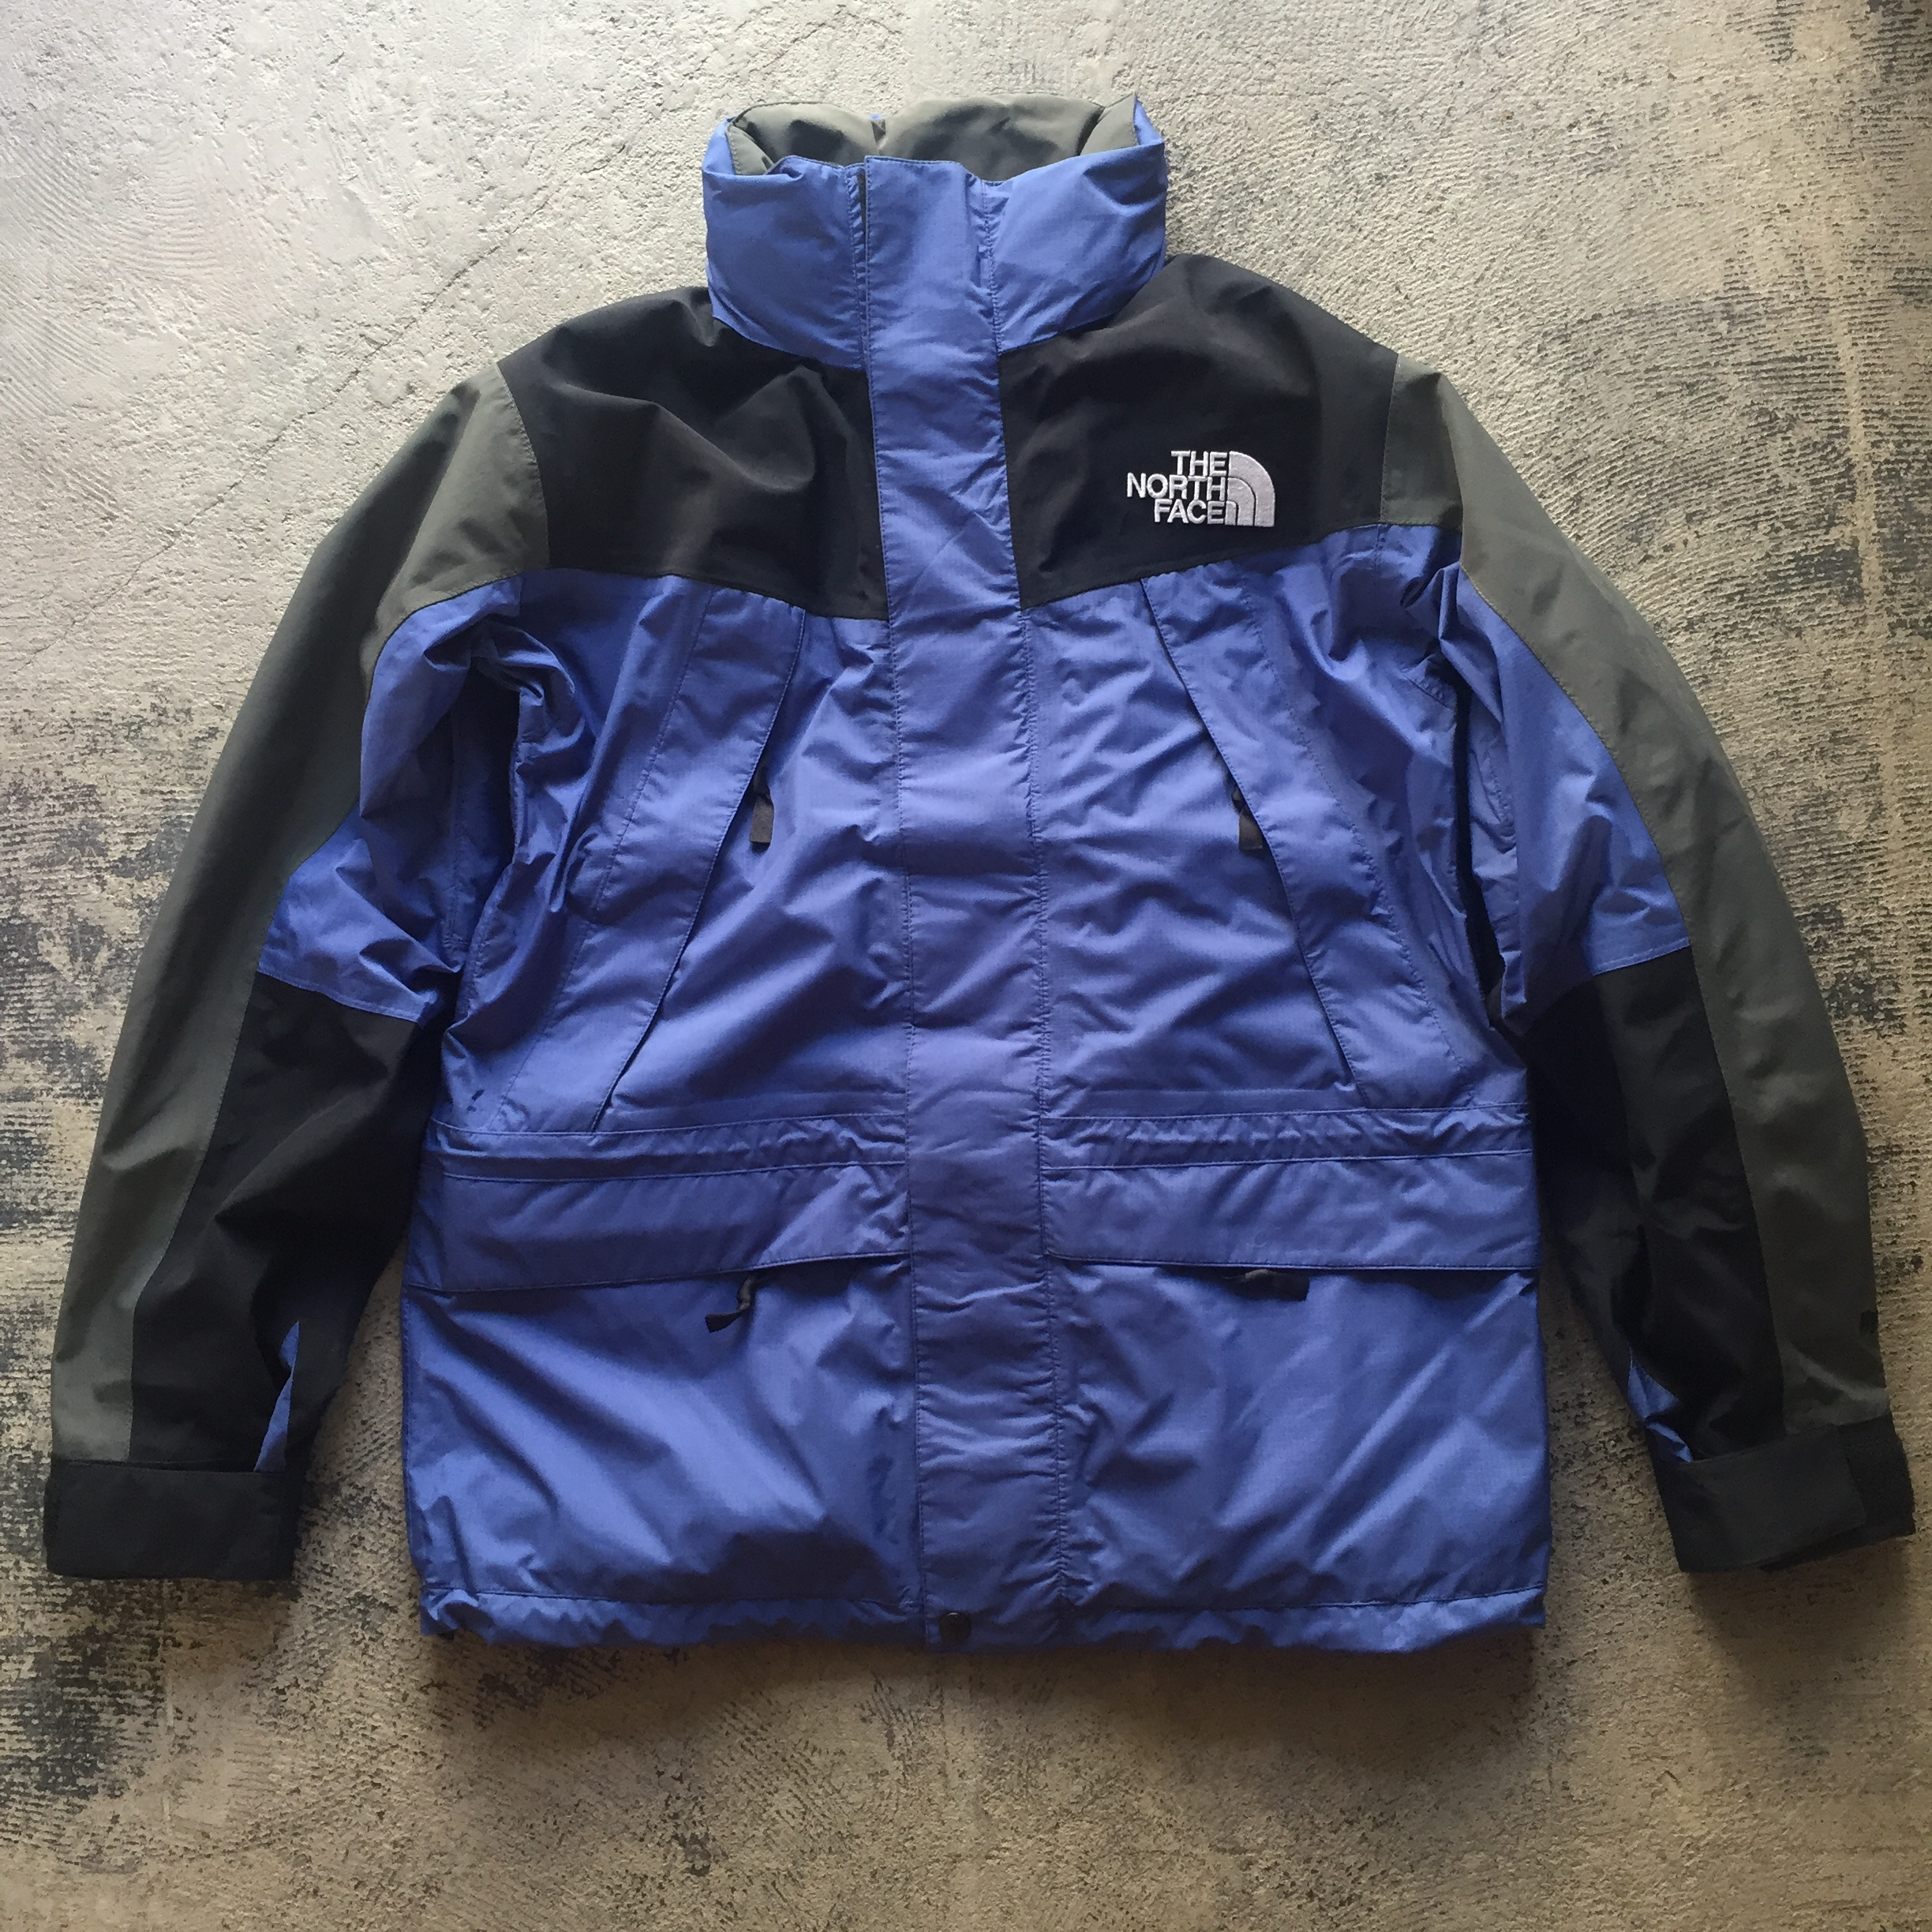 【Dead Stock】The North Face Thunderbolt Jacket